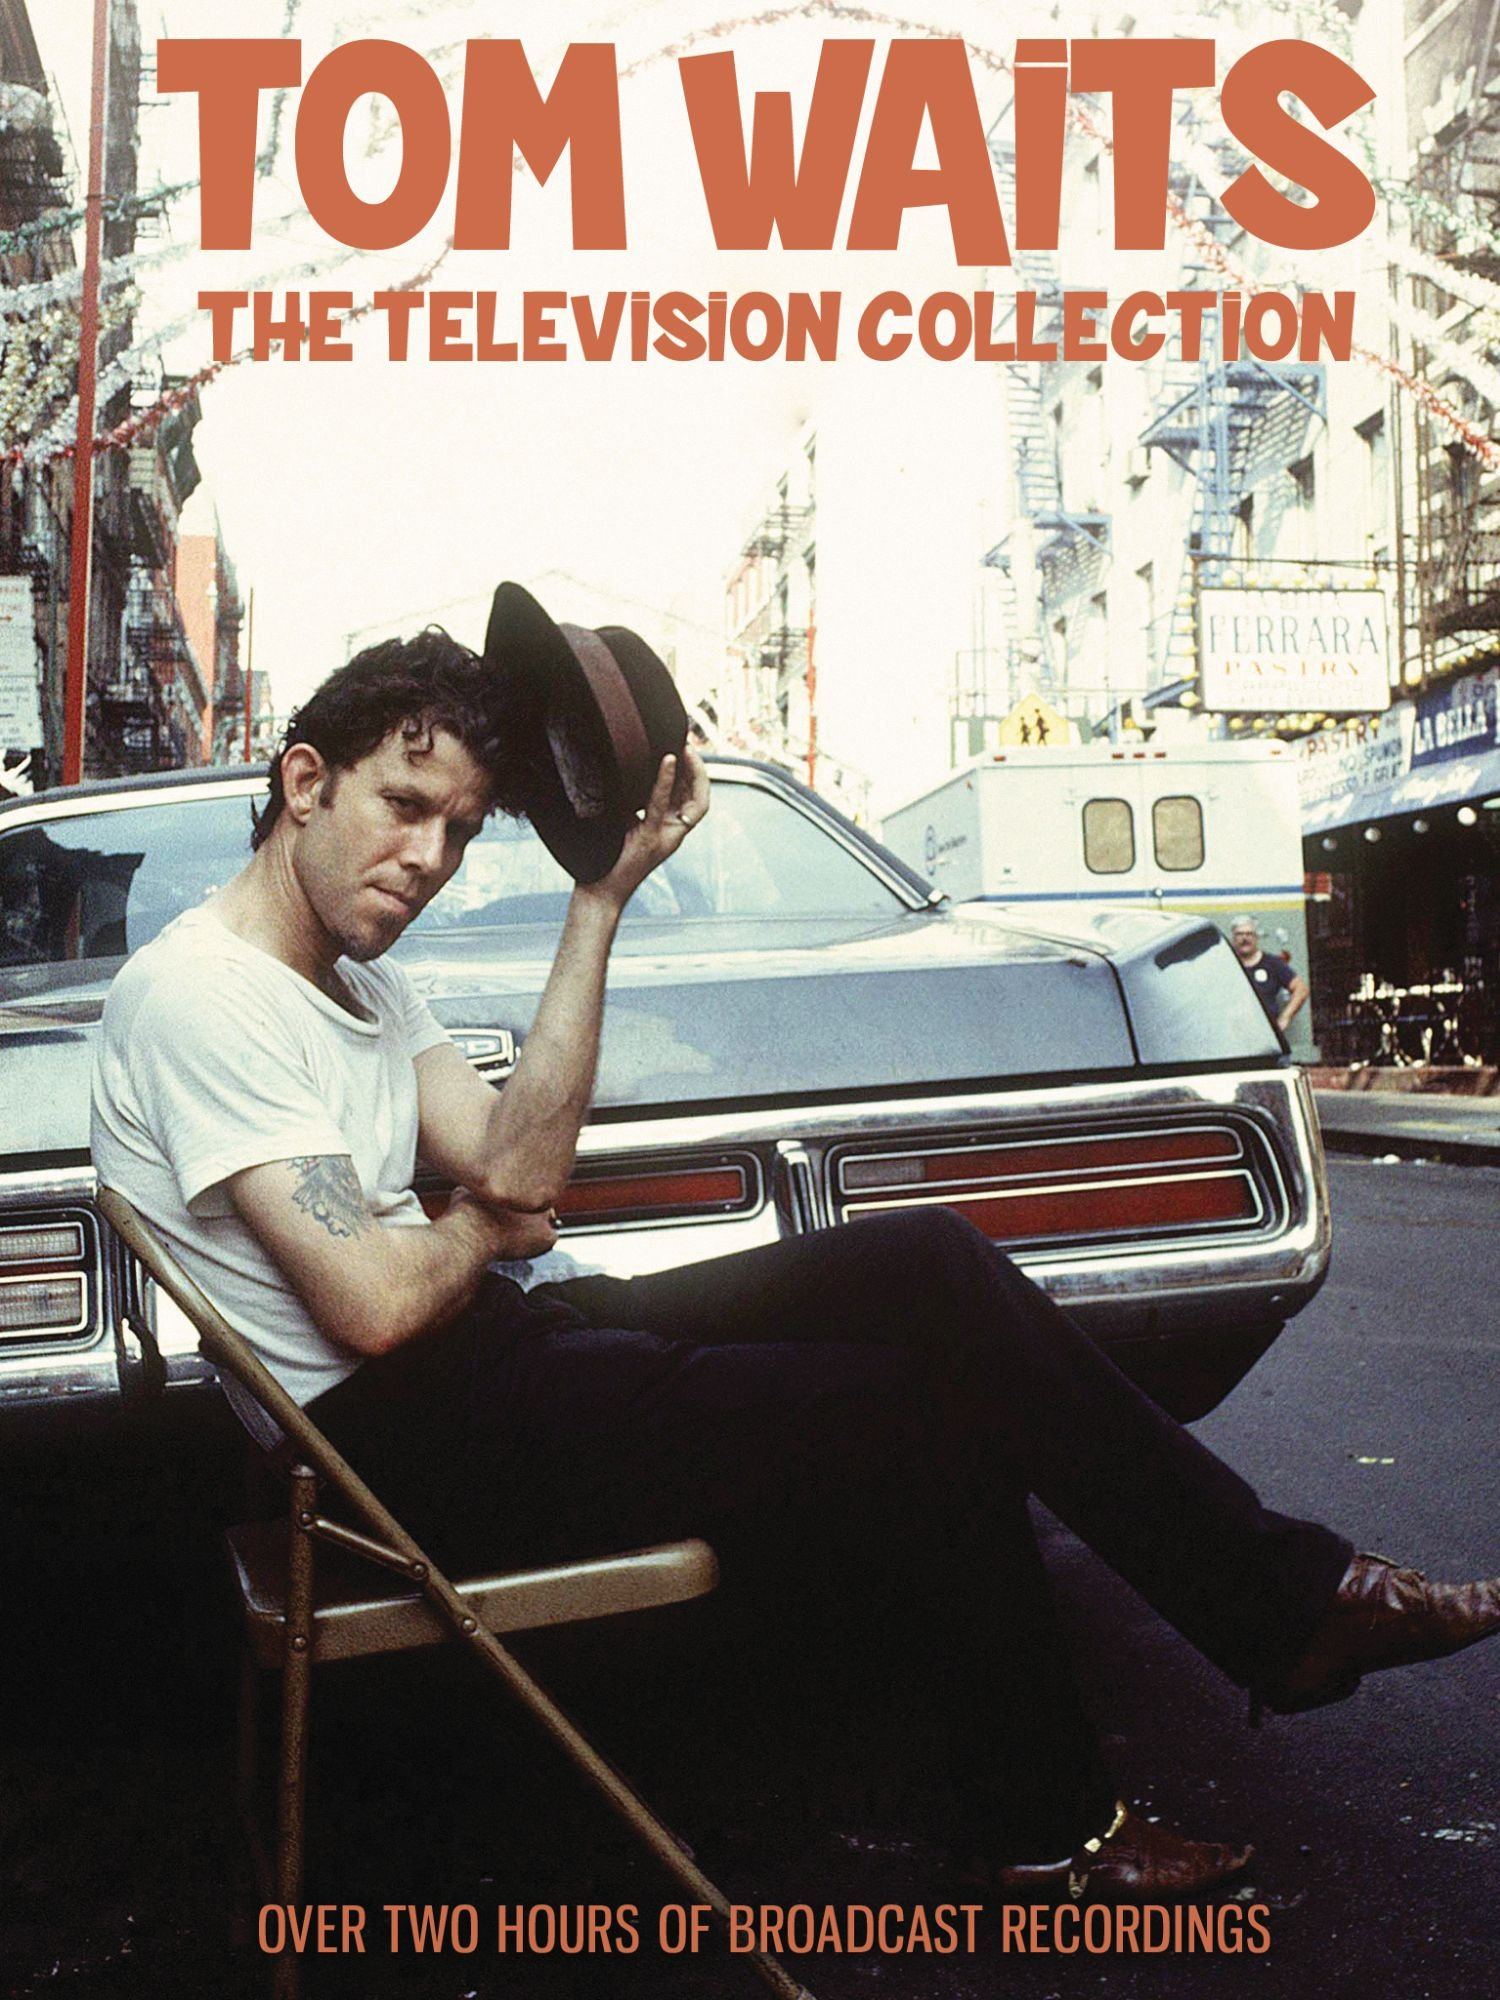 The Television Collection